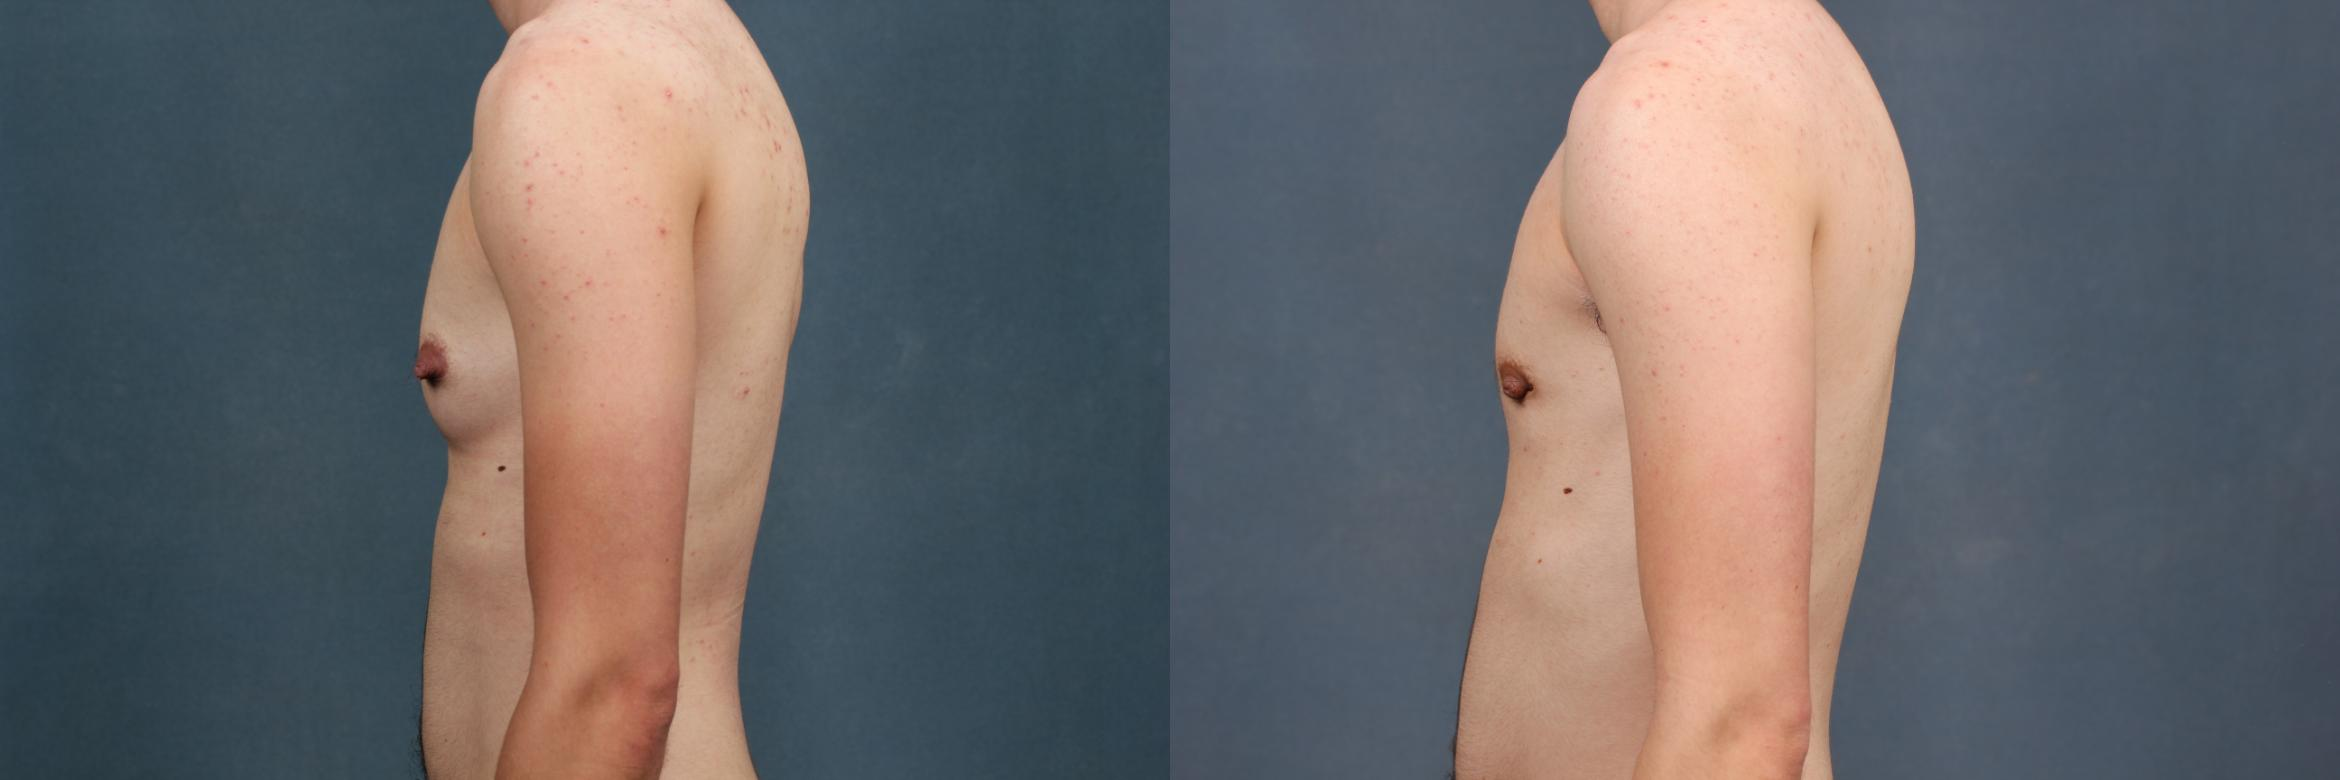 Top Surgery Case 734 Before & After Left Side | Louisville & Lexington, KY | CaloAesthetics® Plastic Surgery Center